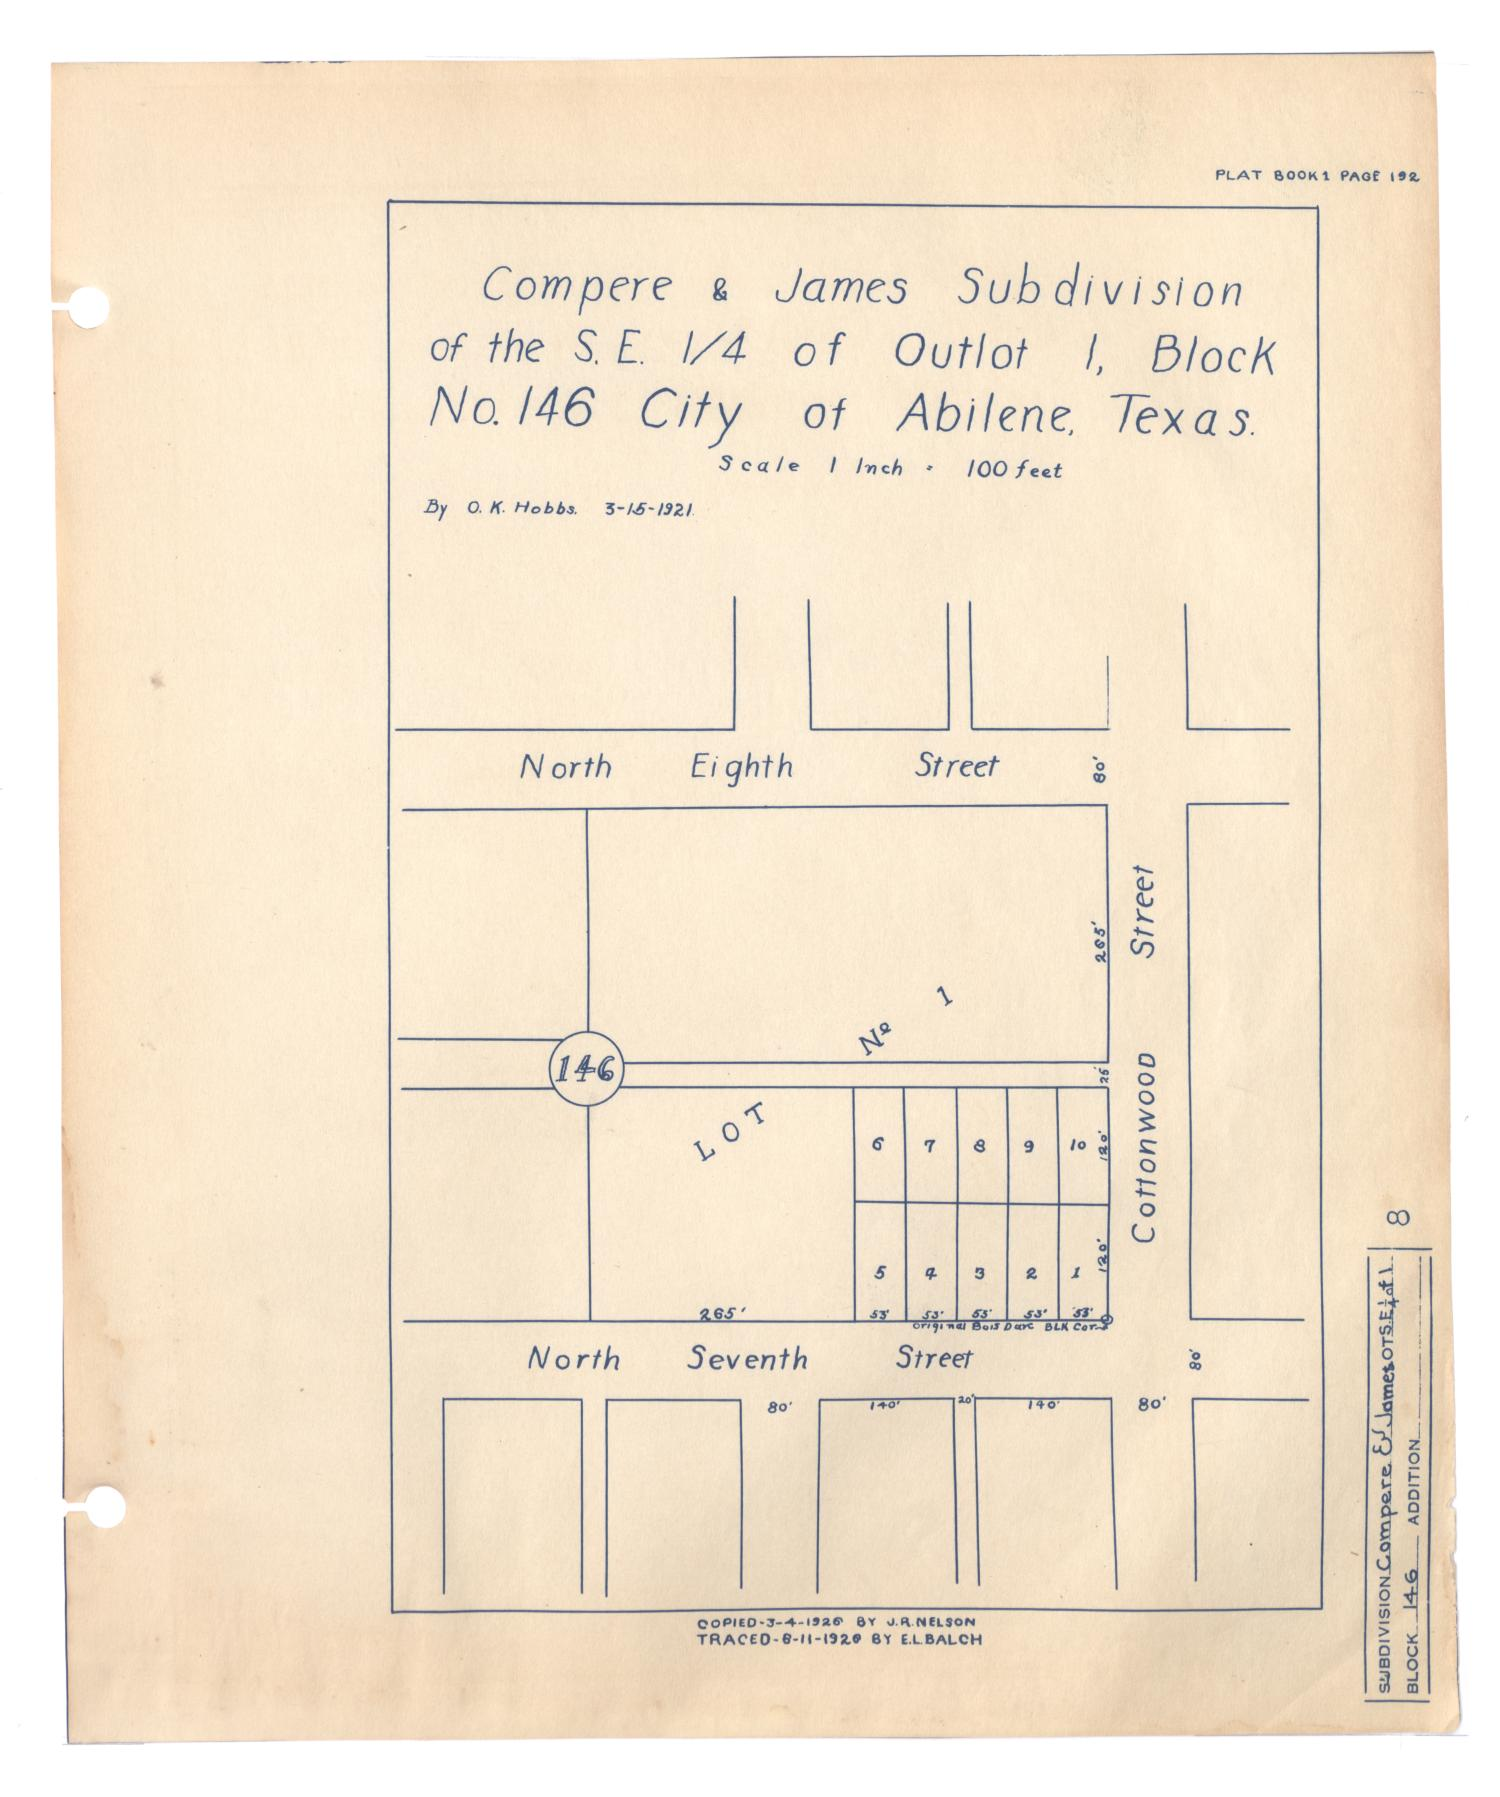 Compere & James Subdivision of the S.E. 1/4 of Outlot 1, Block Number 146 City of Abilene, Texas.                                                                                                      [Sequence #]: 1 of 2